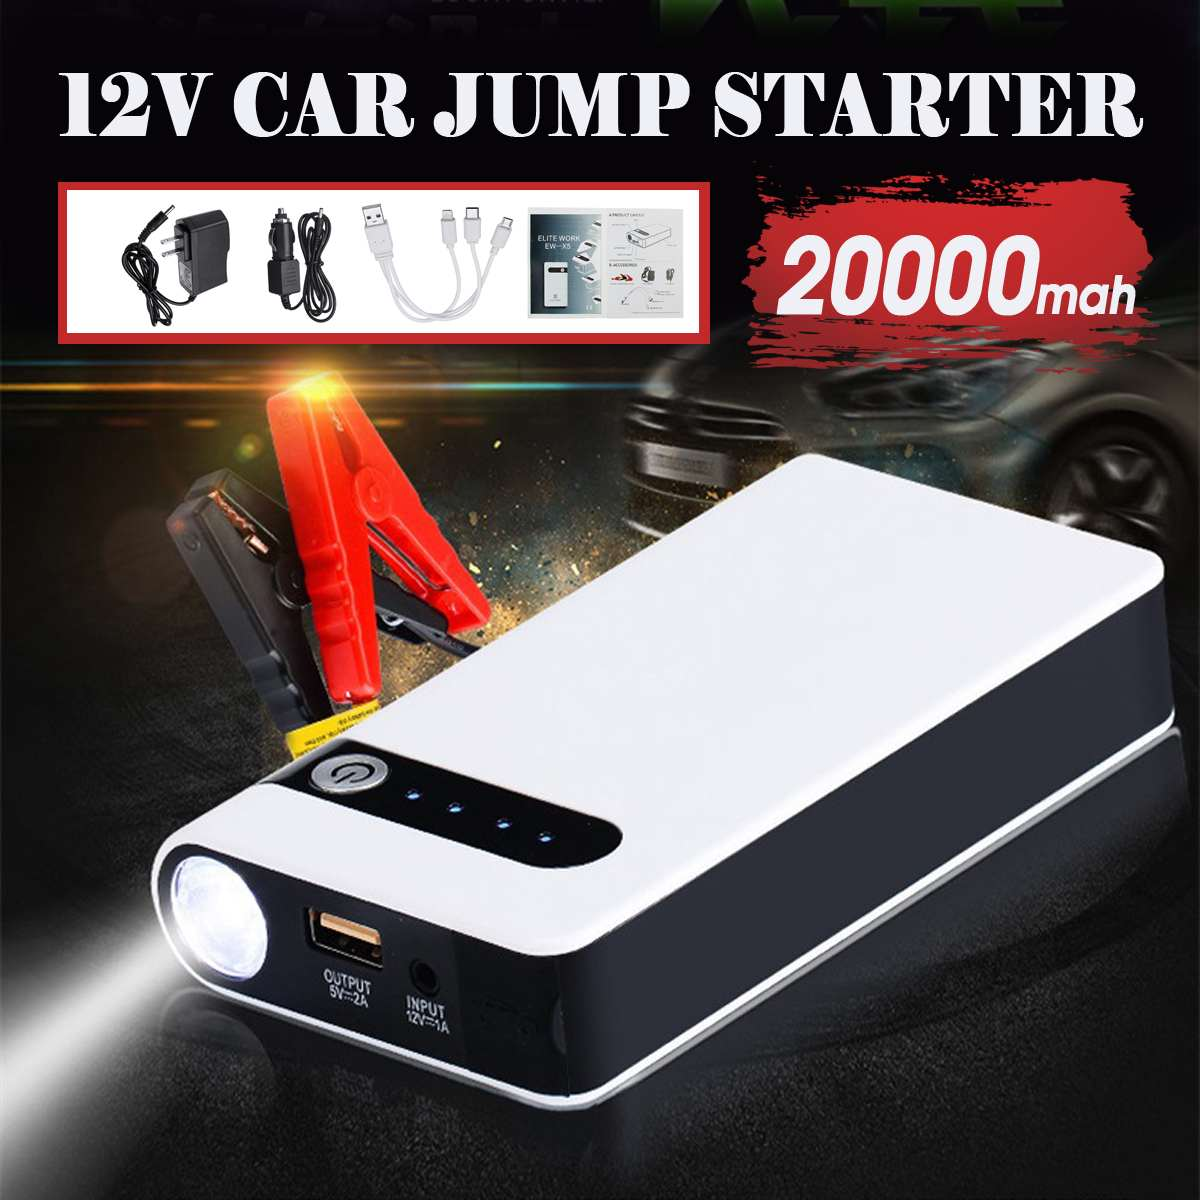 12V 20000mAh Car Jump Starter Booster USB Jumper Box Power Bank Battery Charger Emergency Starting Device